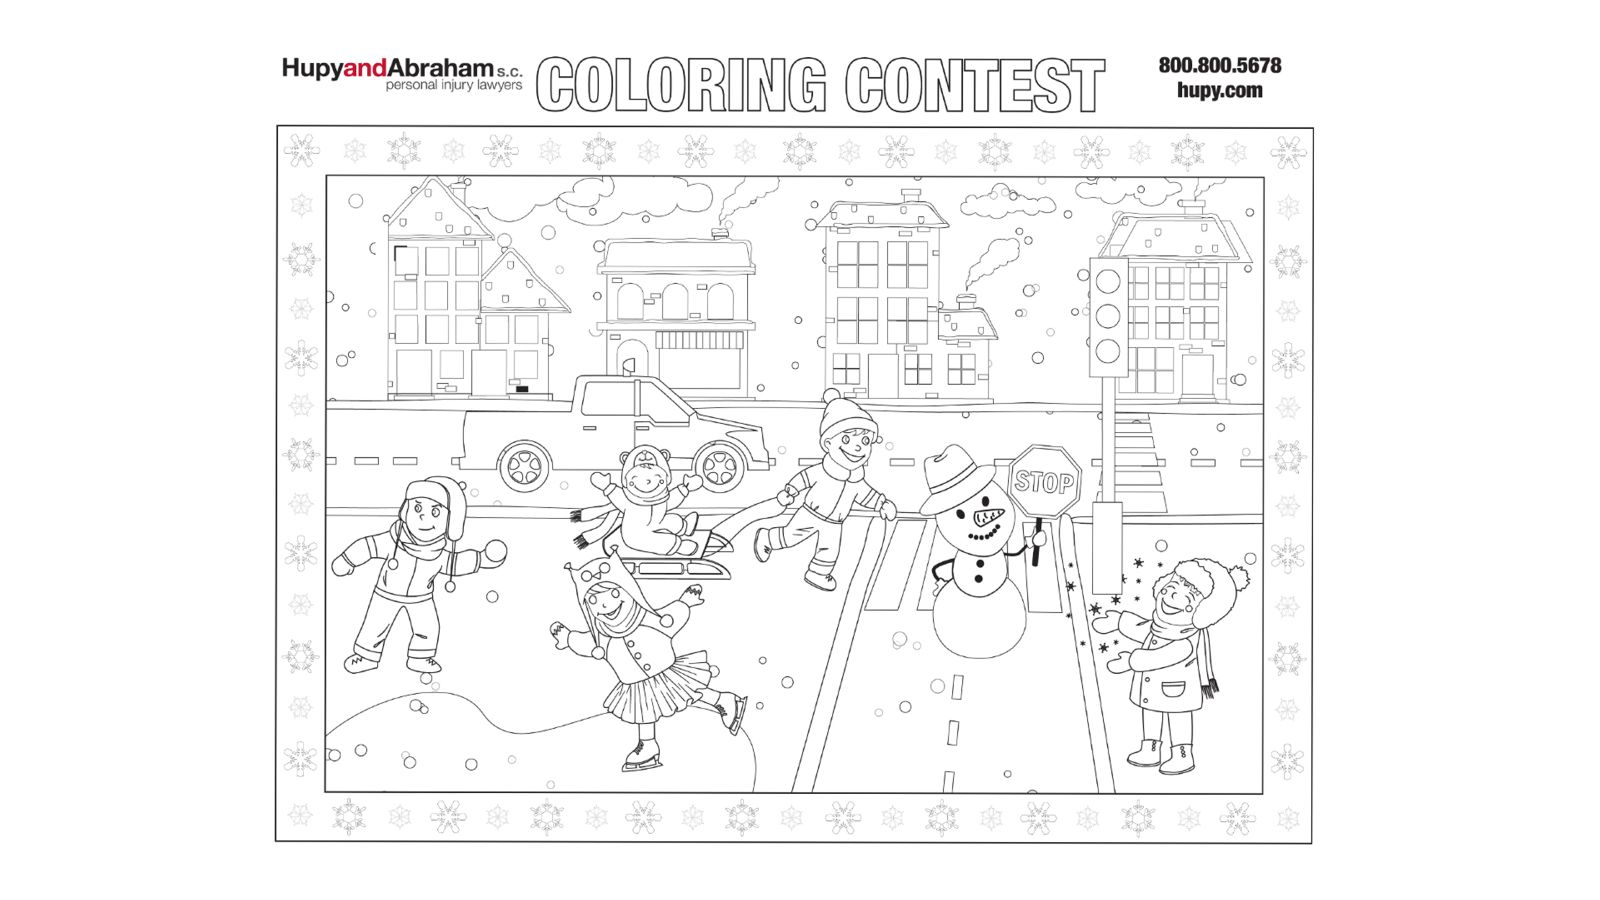 Coloring Contest of kids playing in snow